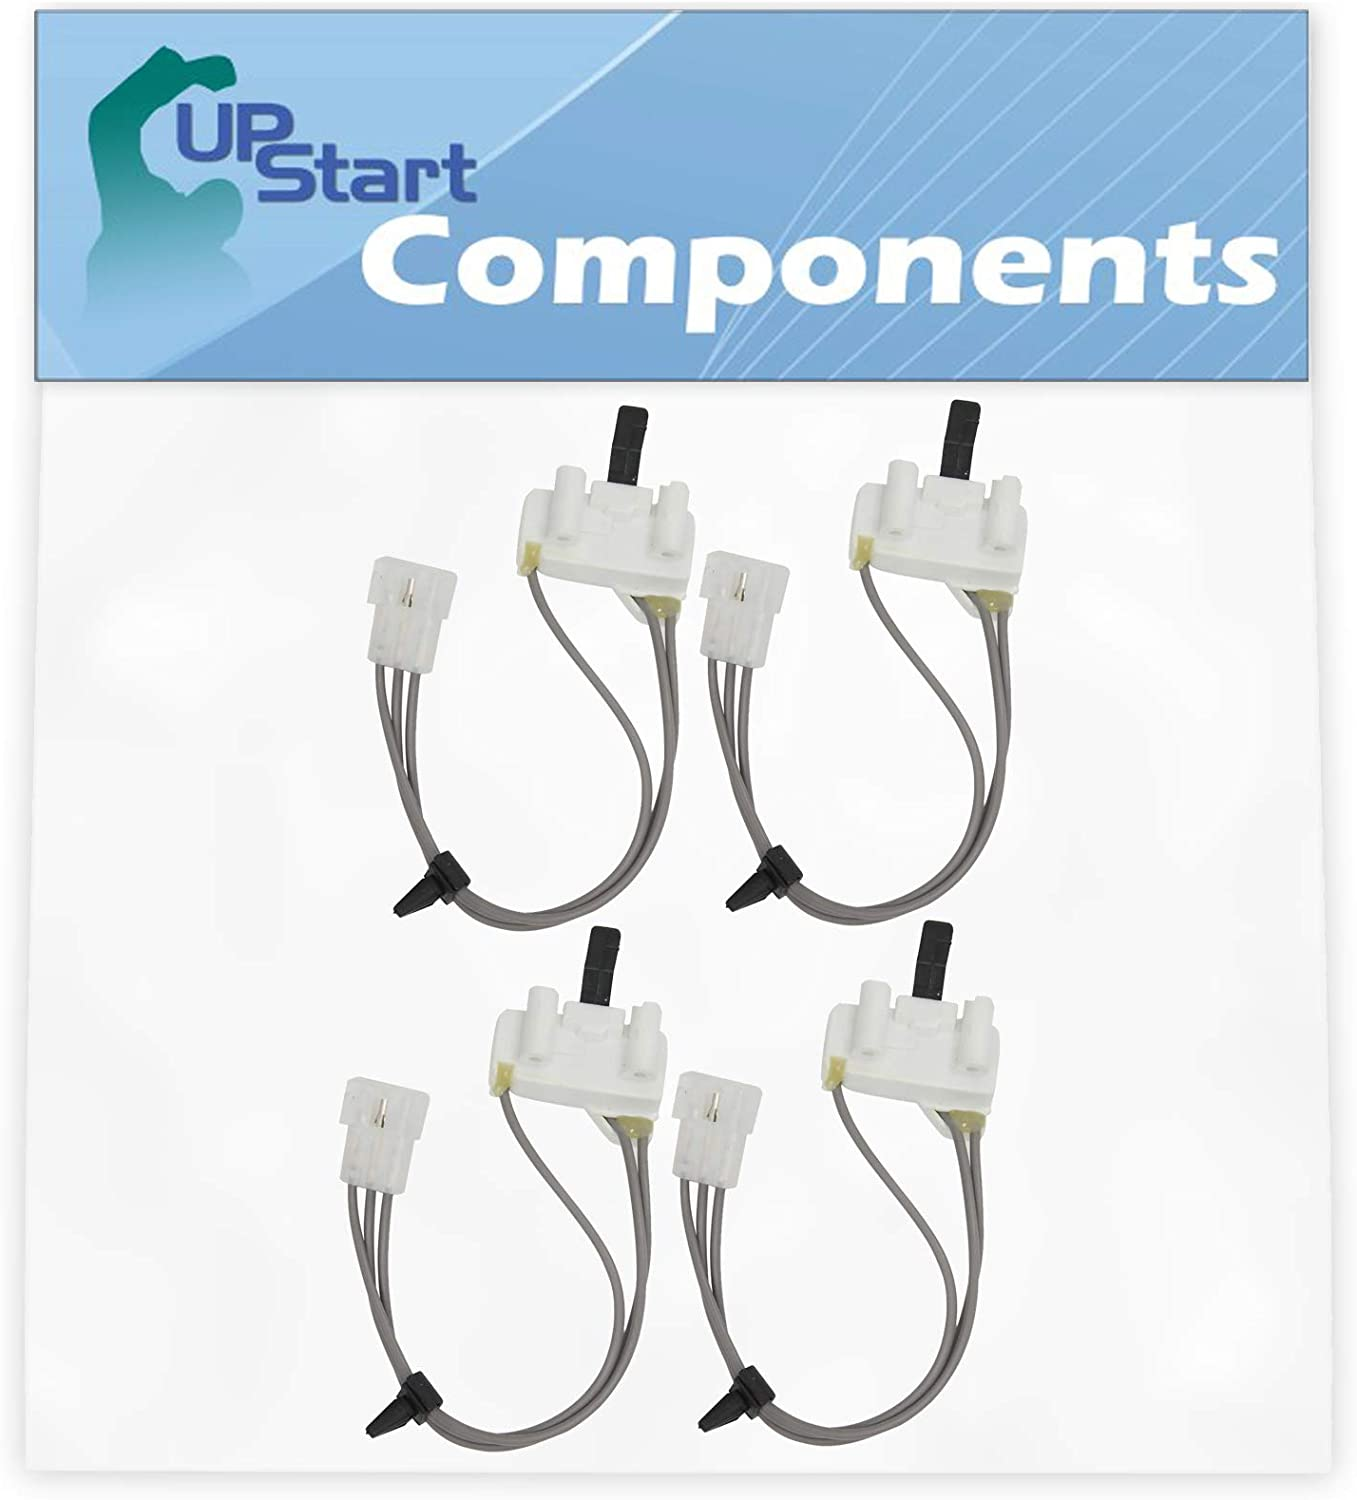 4-Pack 3406105 Dryer Door Switch Replacement for Whirlpool, Roper & Estate Dryers - Compatible with Part Number AP6008560, 3405104, 3405105, 3406104, PS11741700